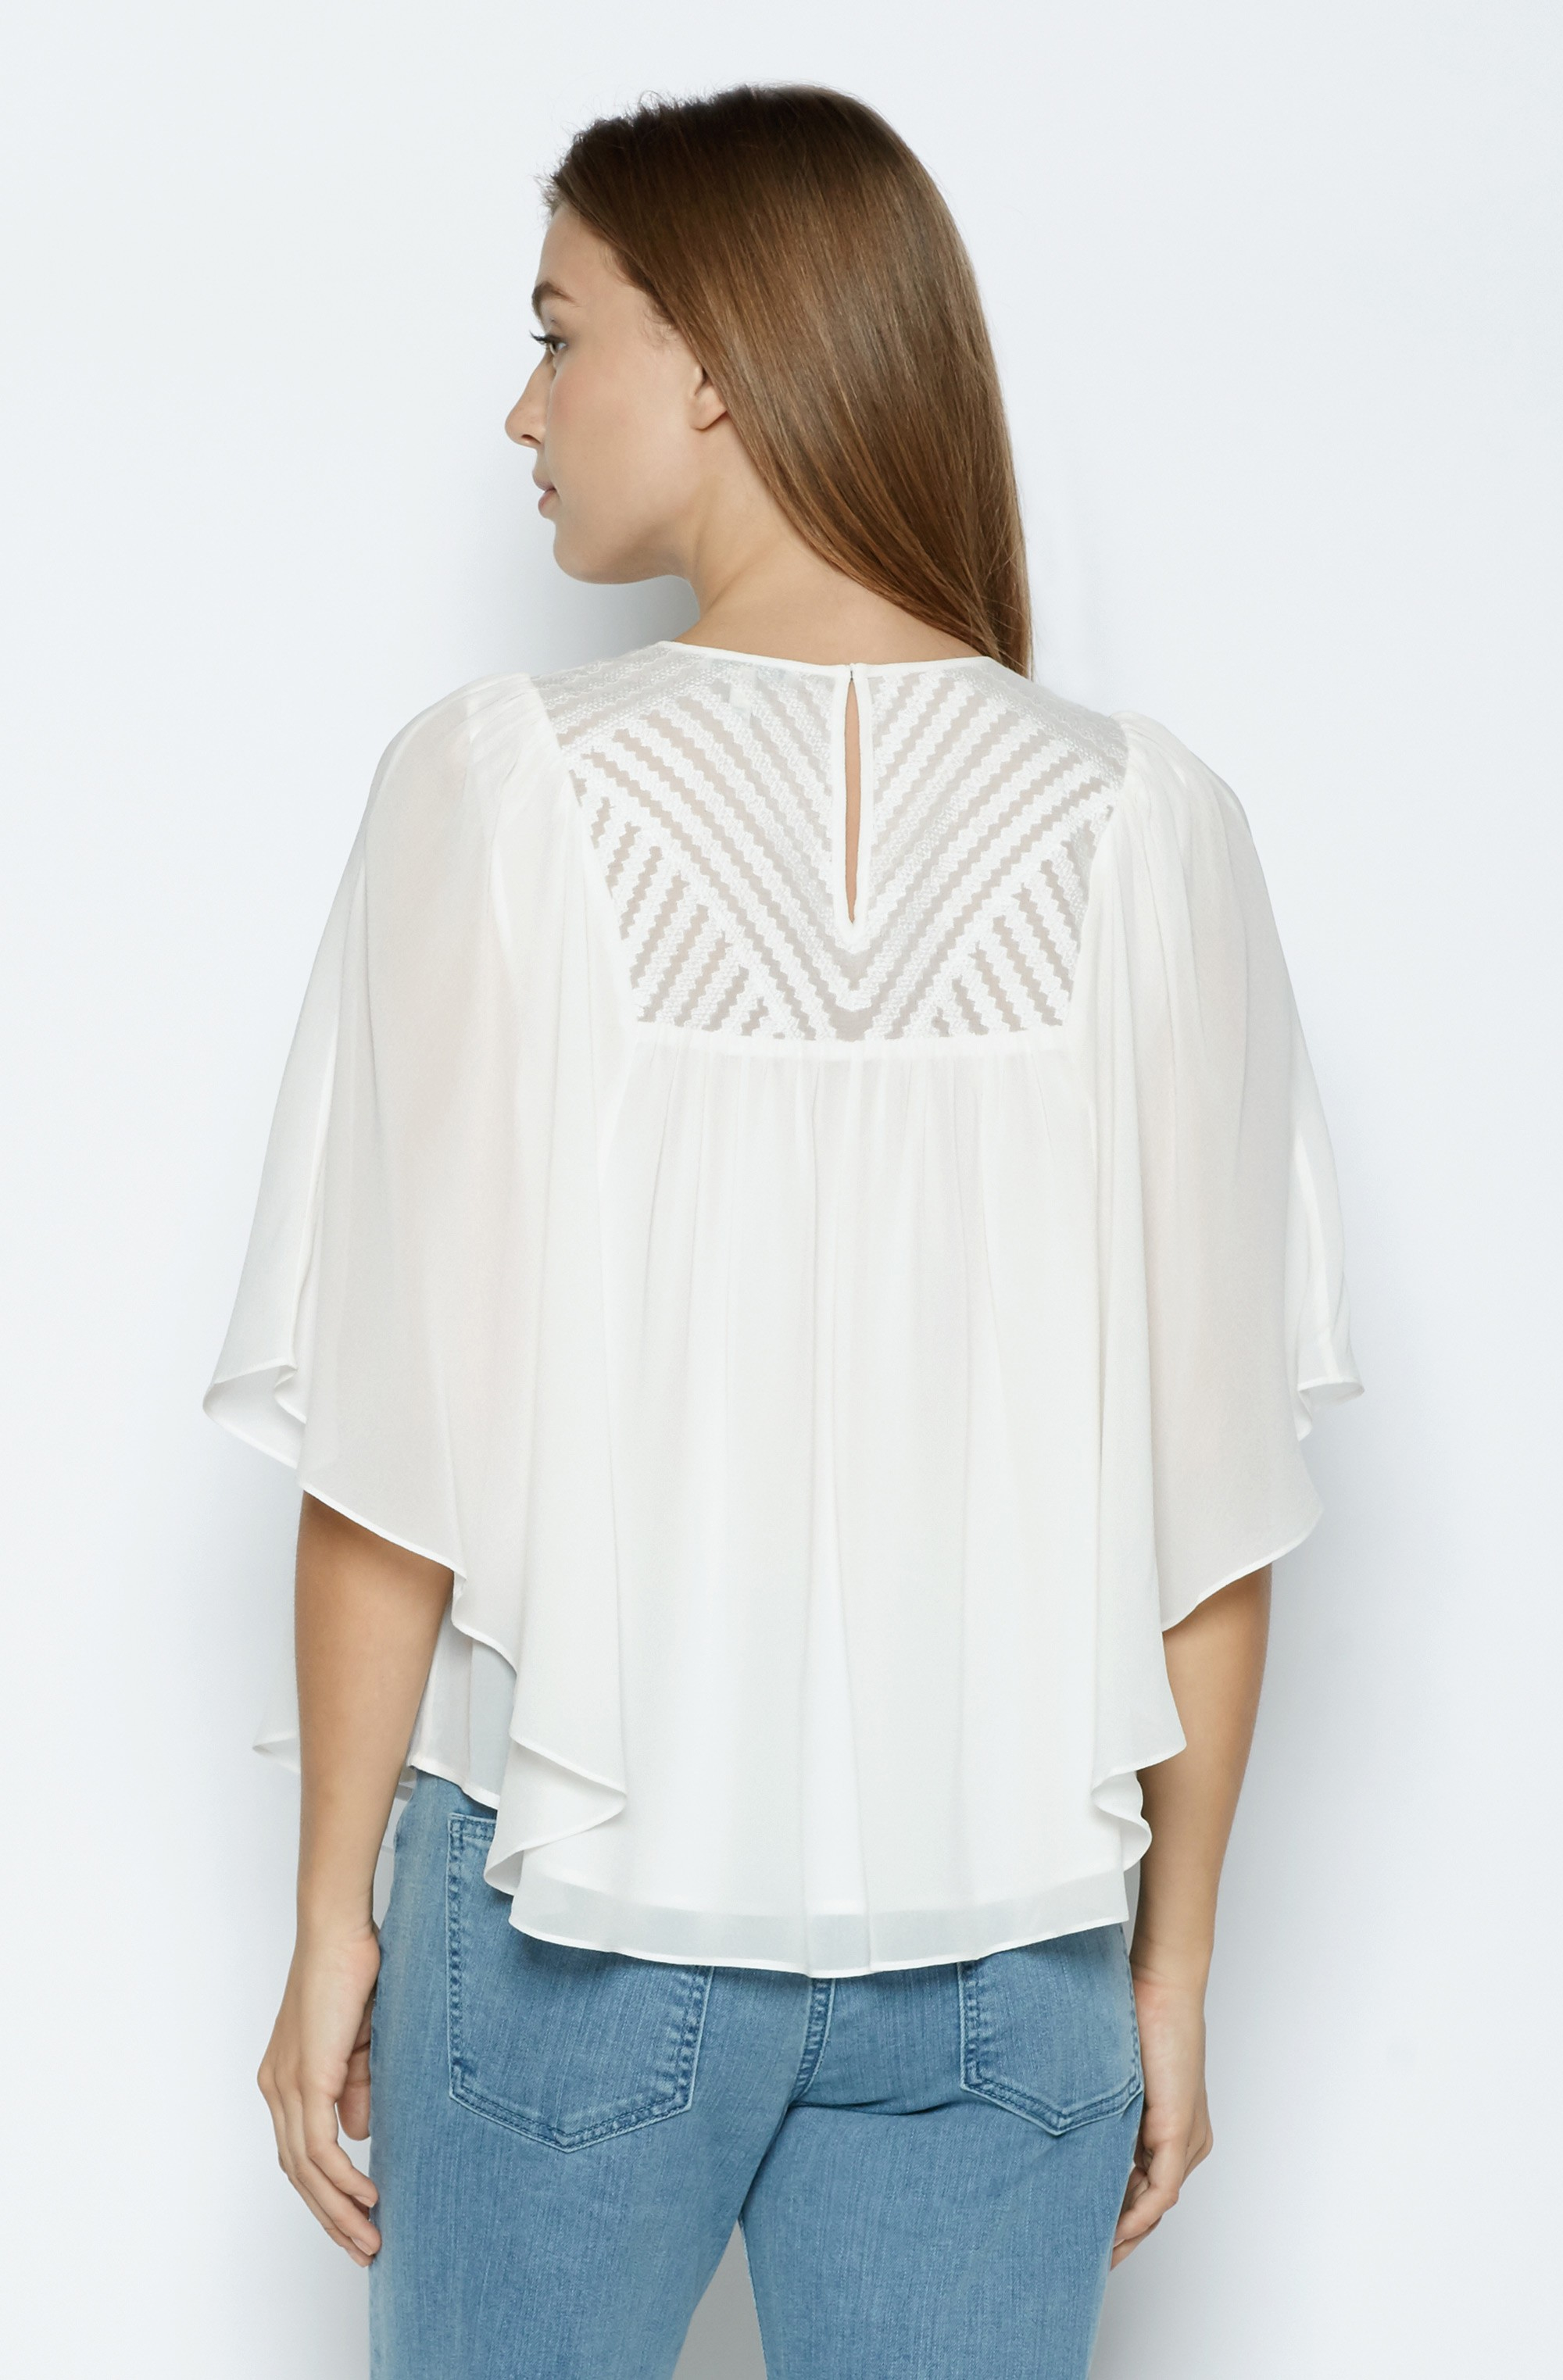 cc71f85d6d3 Lyst - Joie Patel Silk Top in White